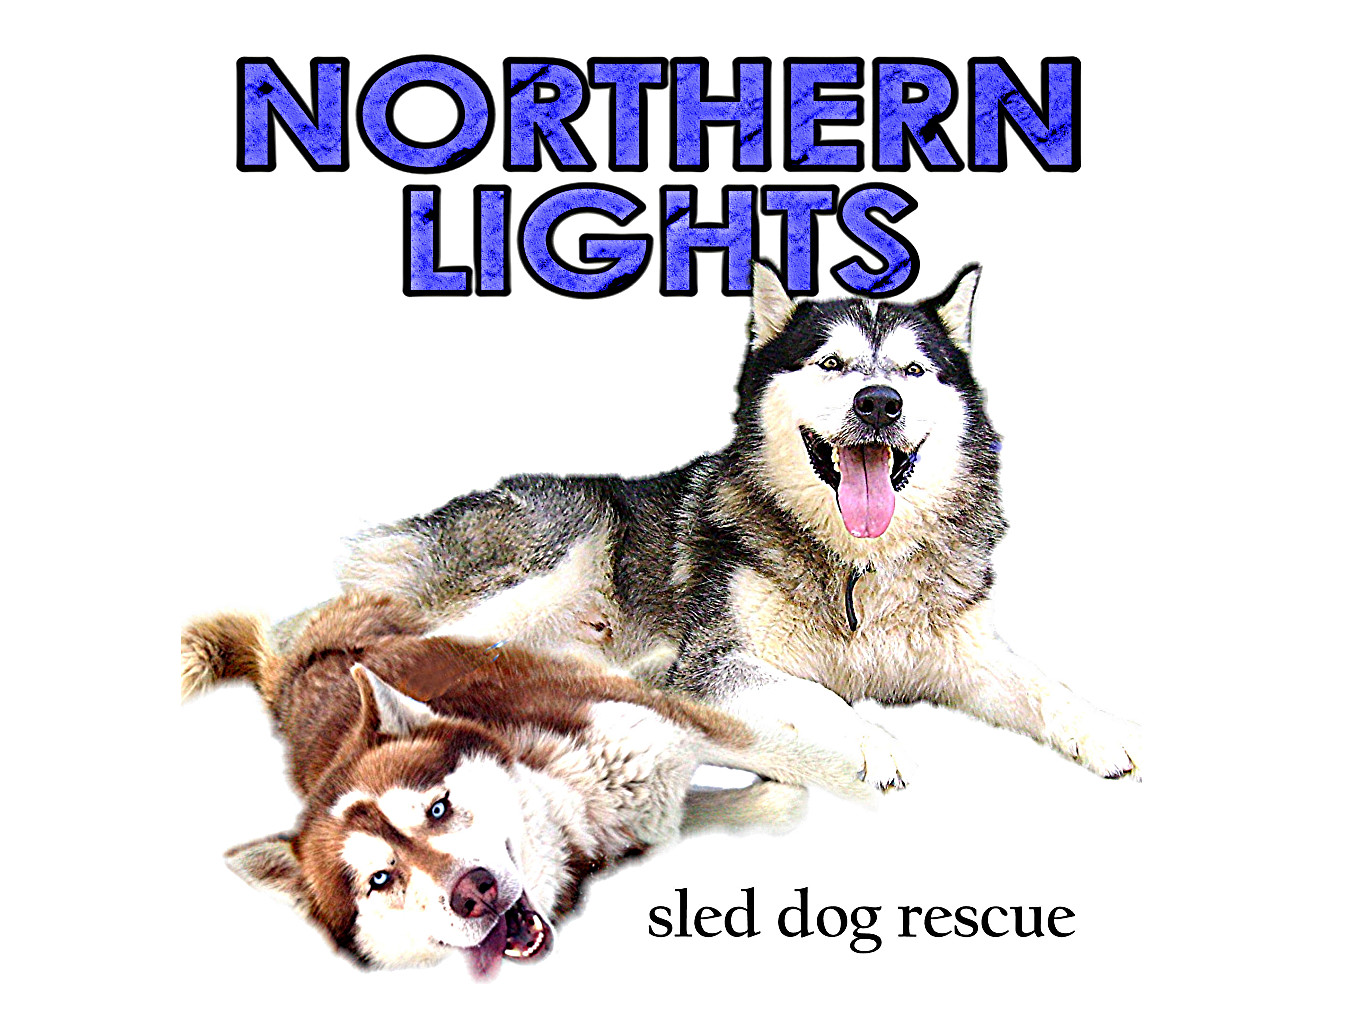 Northern Lights Sled Dog Rescue: Siberian Husky - Alaskan Malamute